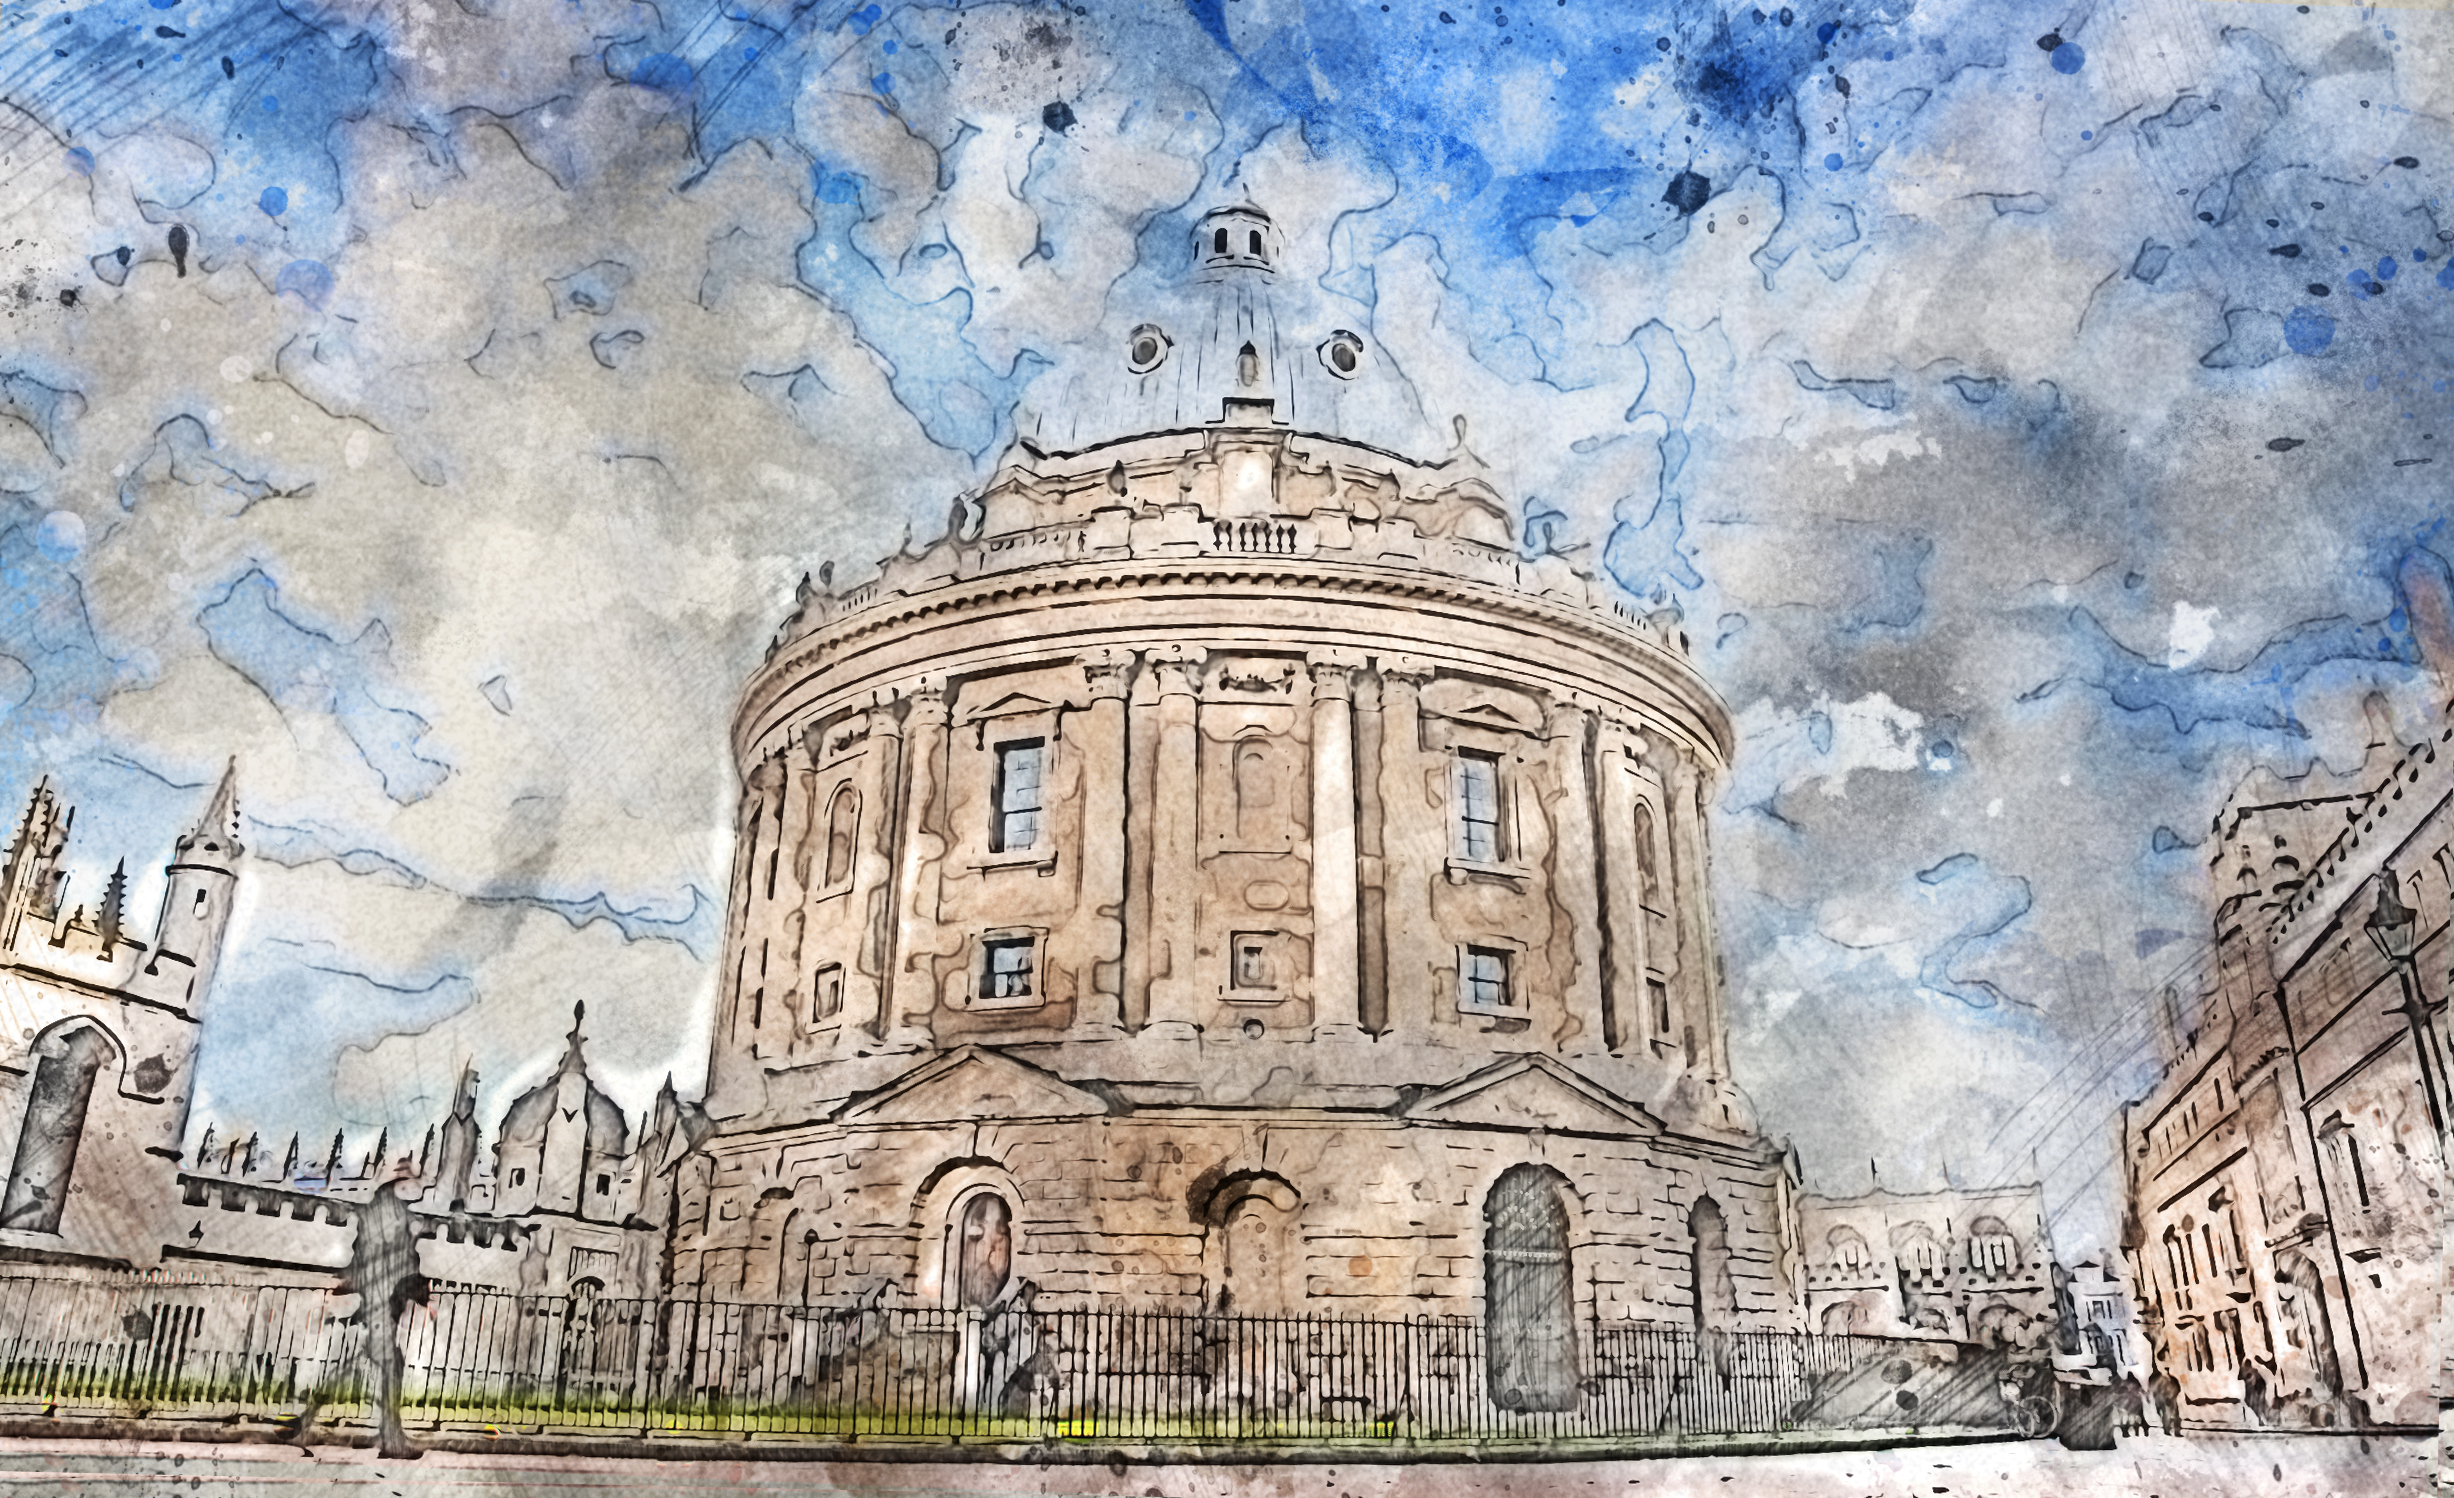 I don't think I will ever get tired of making prints of this building. Its still one of my favourites in Oxford! Keep an eye out for prints available in our gallery.